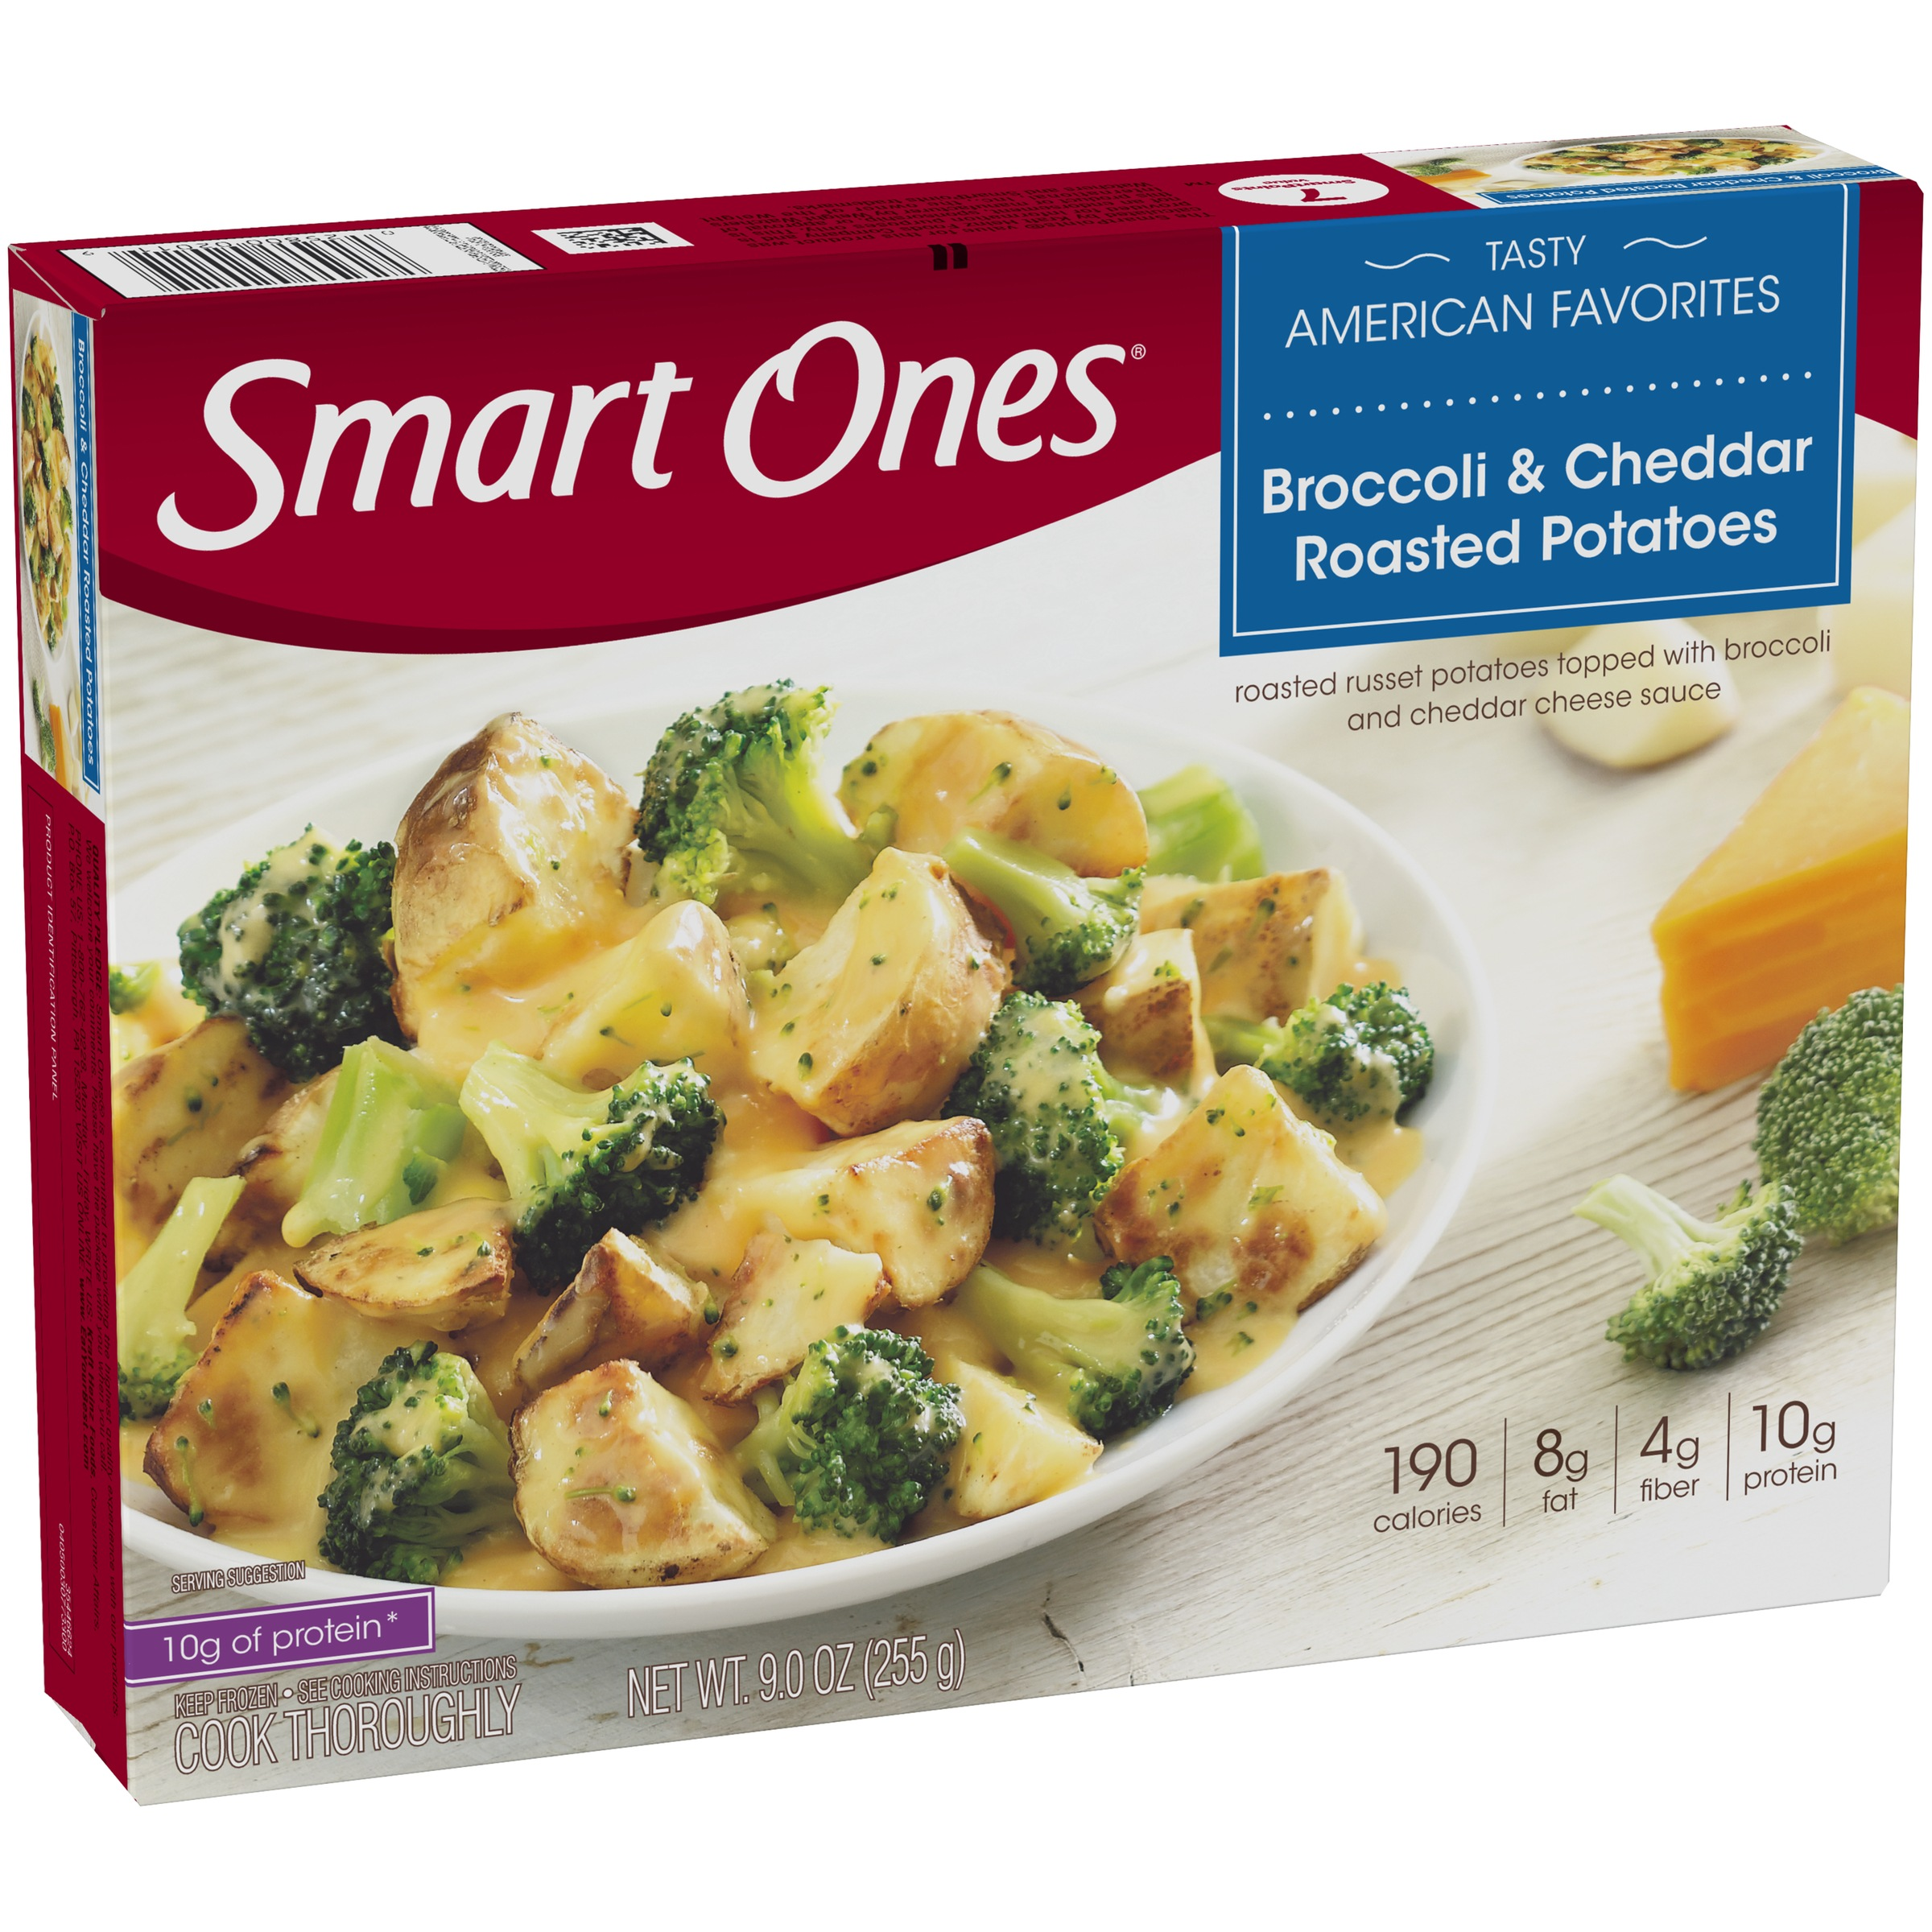 Smart Ones® Tasty American Favorites Broccoli & Cheddar Roasted Potatoes 9 oz. Box